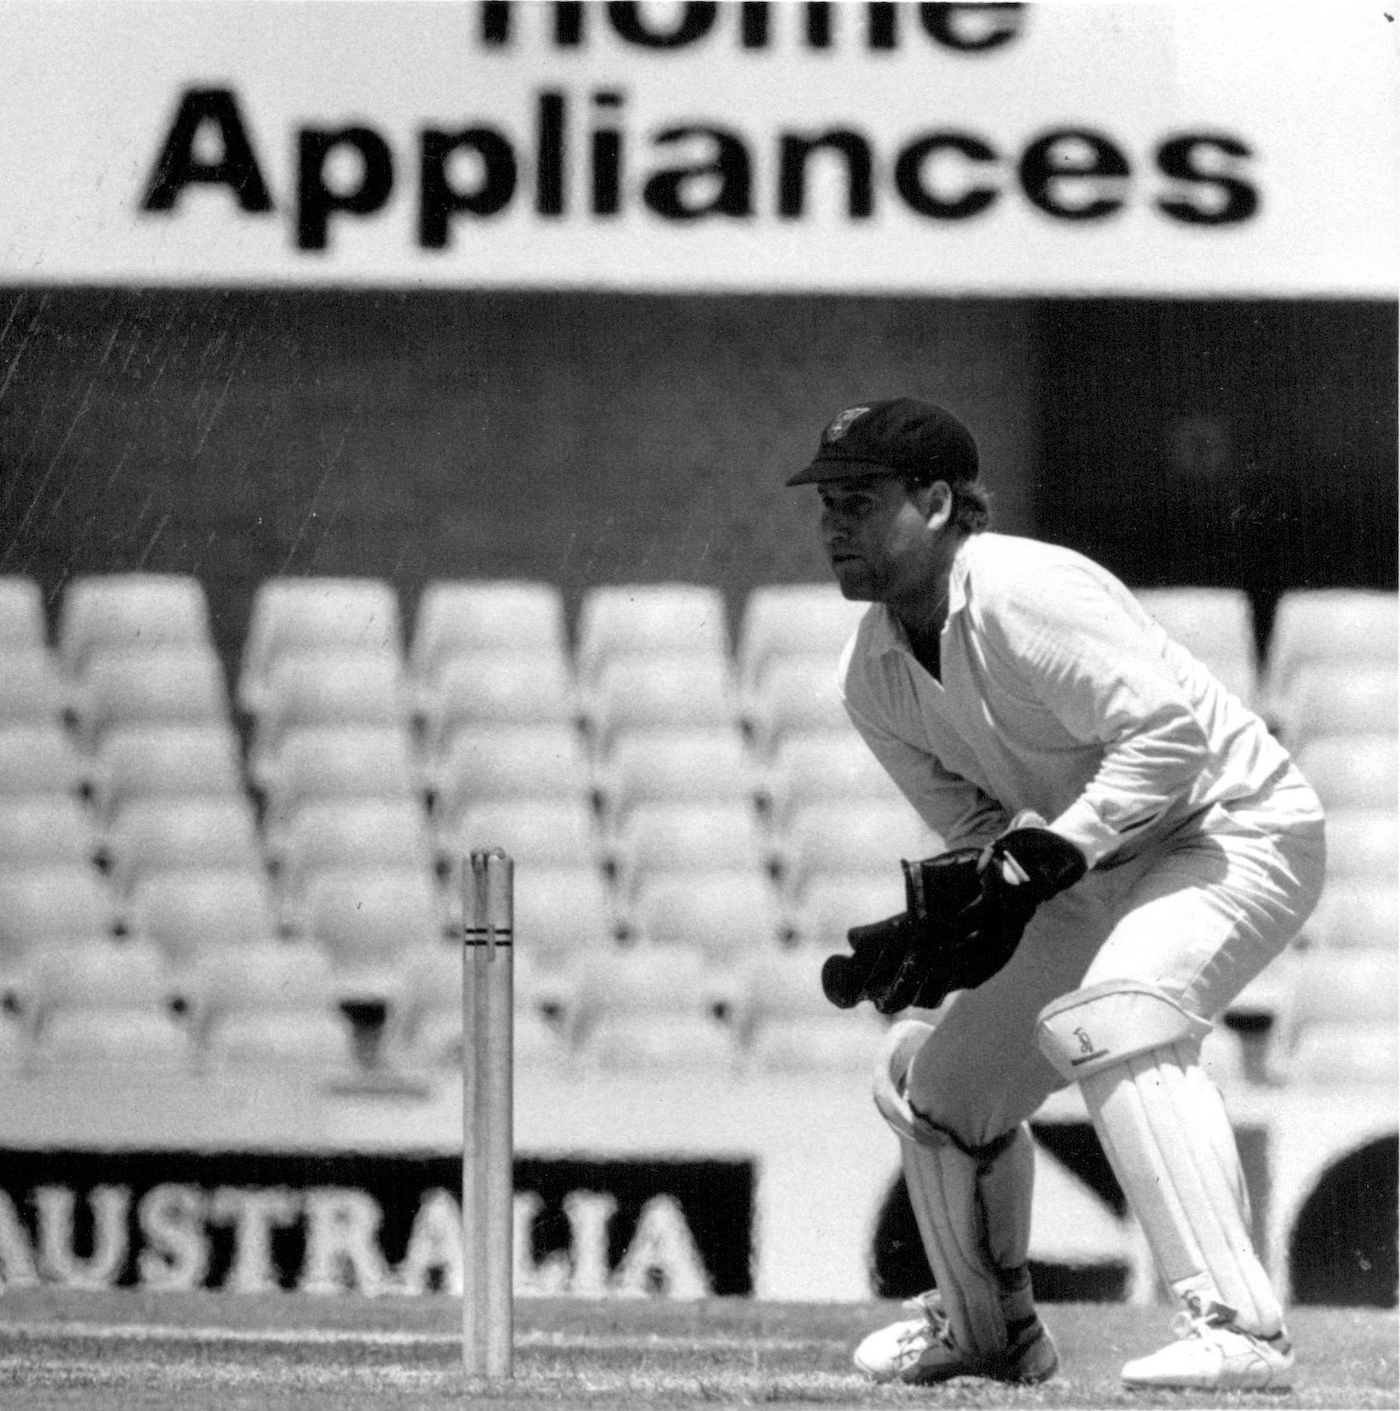 Emery led New South Wales to the Sheffield Shield title in 1993 and 1994